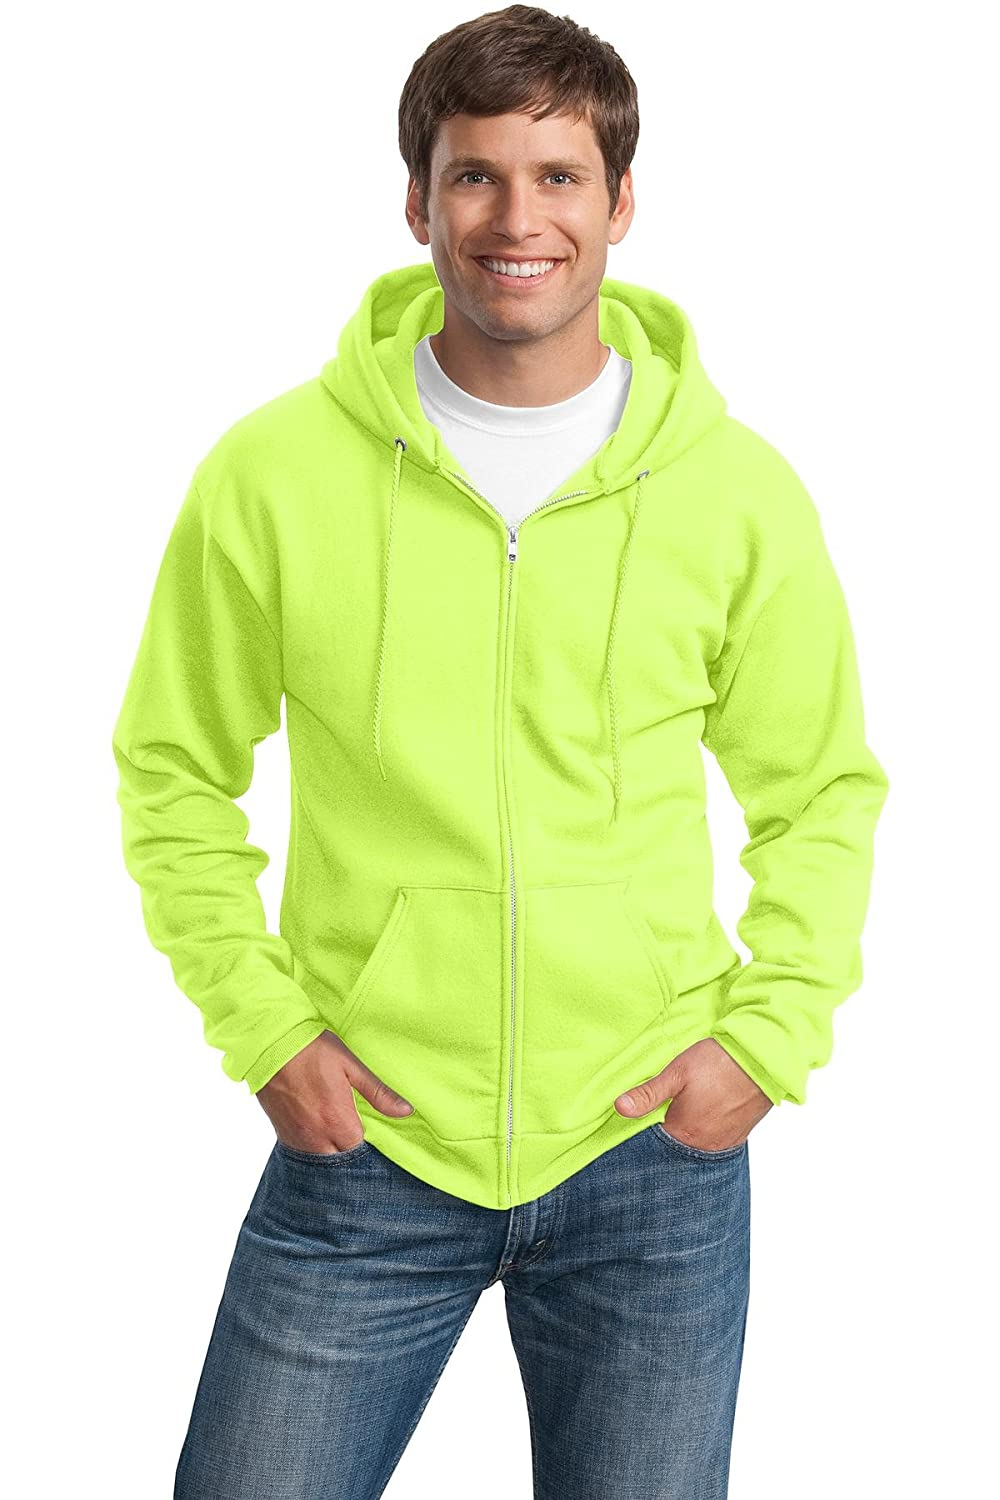 Port & Company Men's Classic Lightweight Hooded Sweatshirt